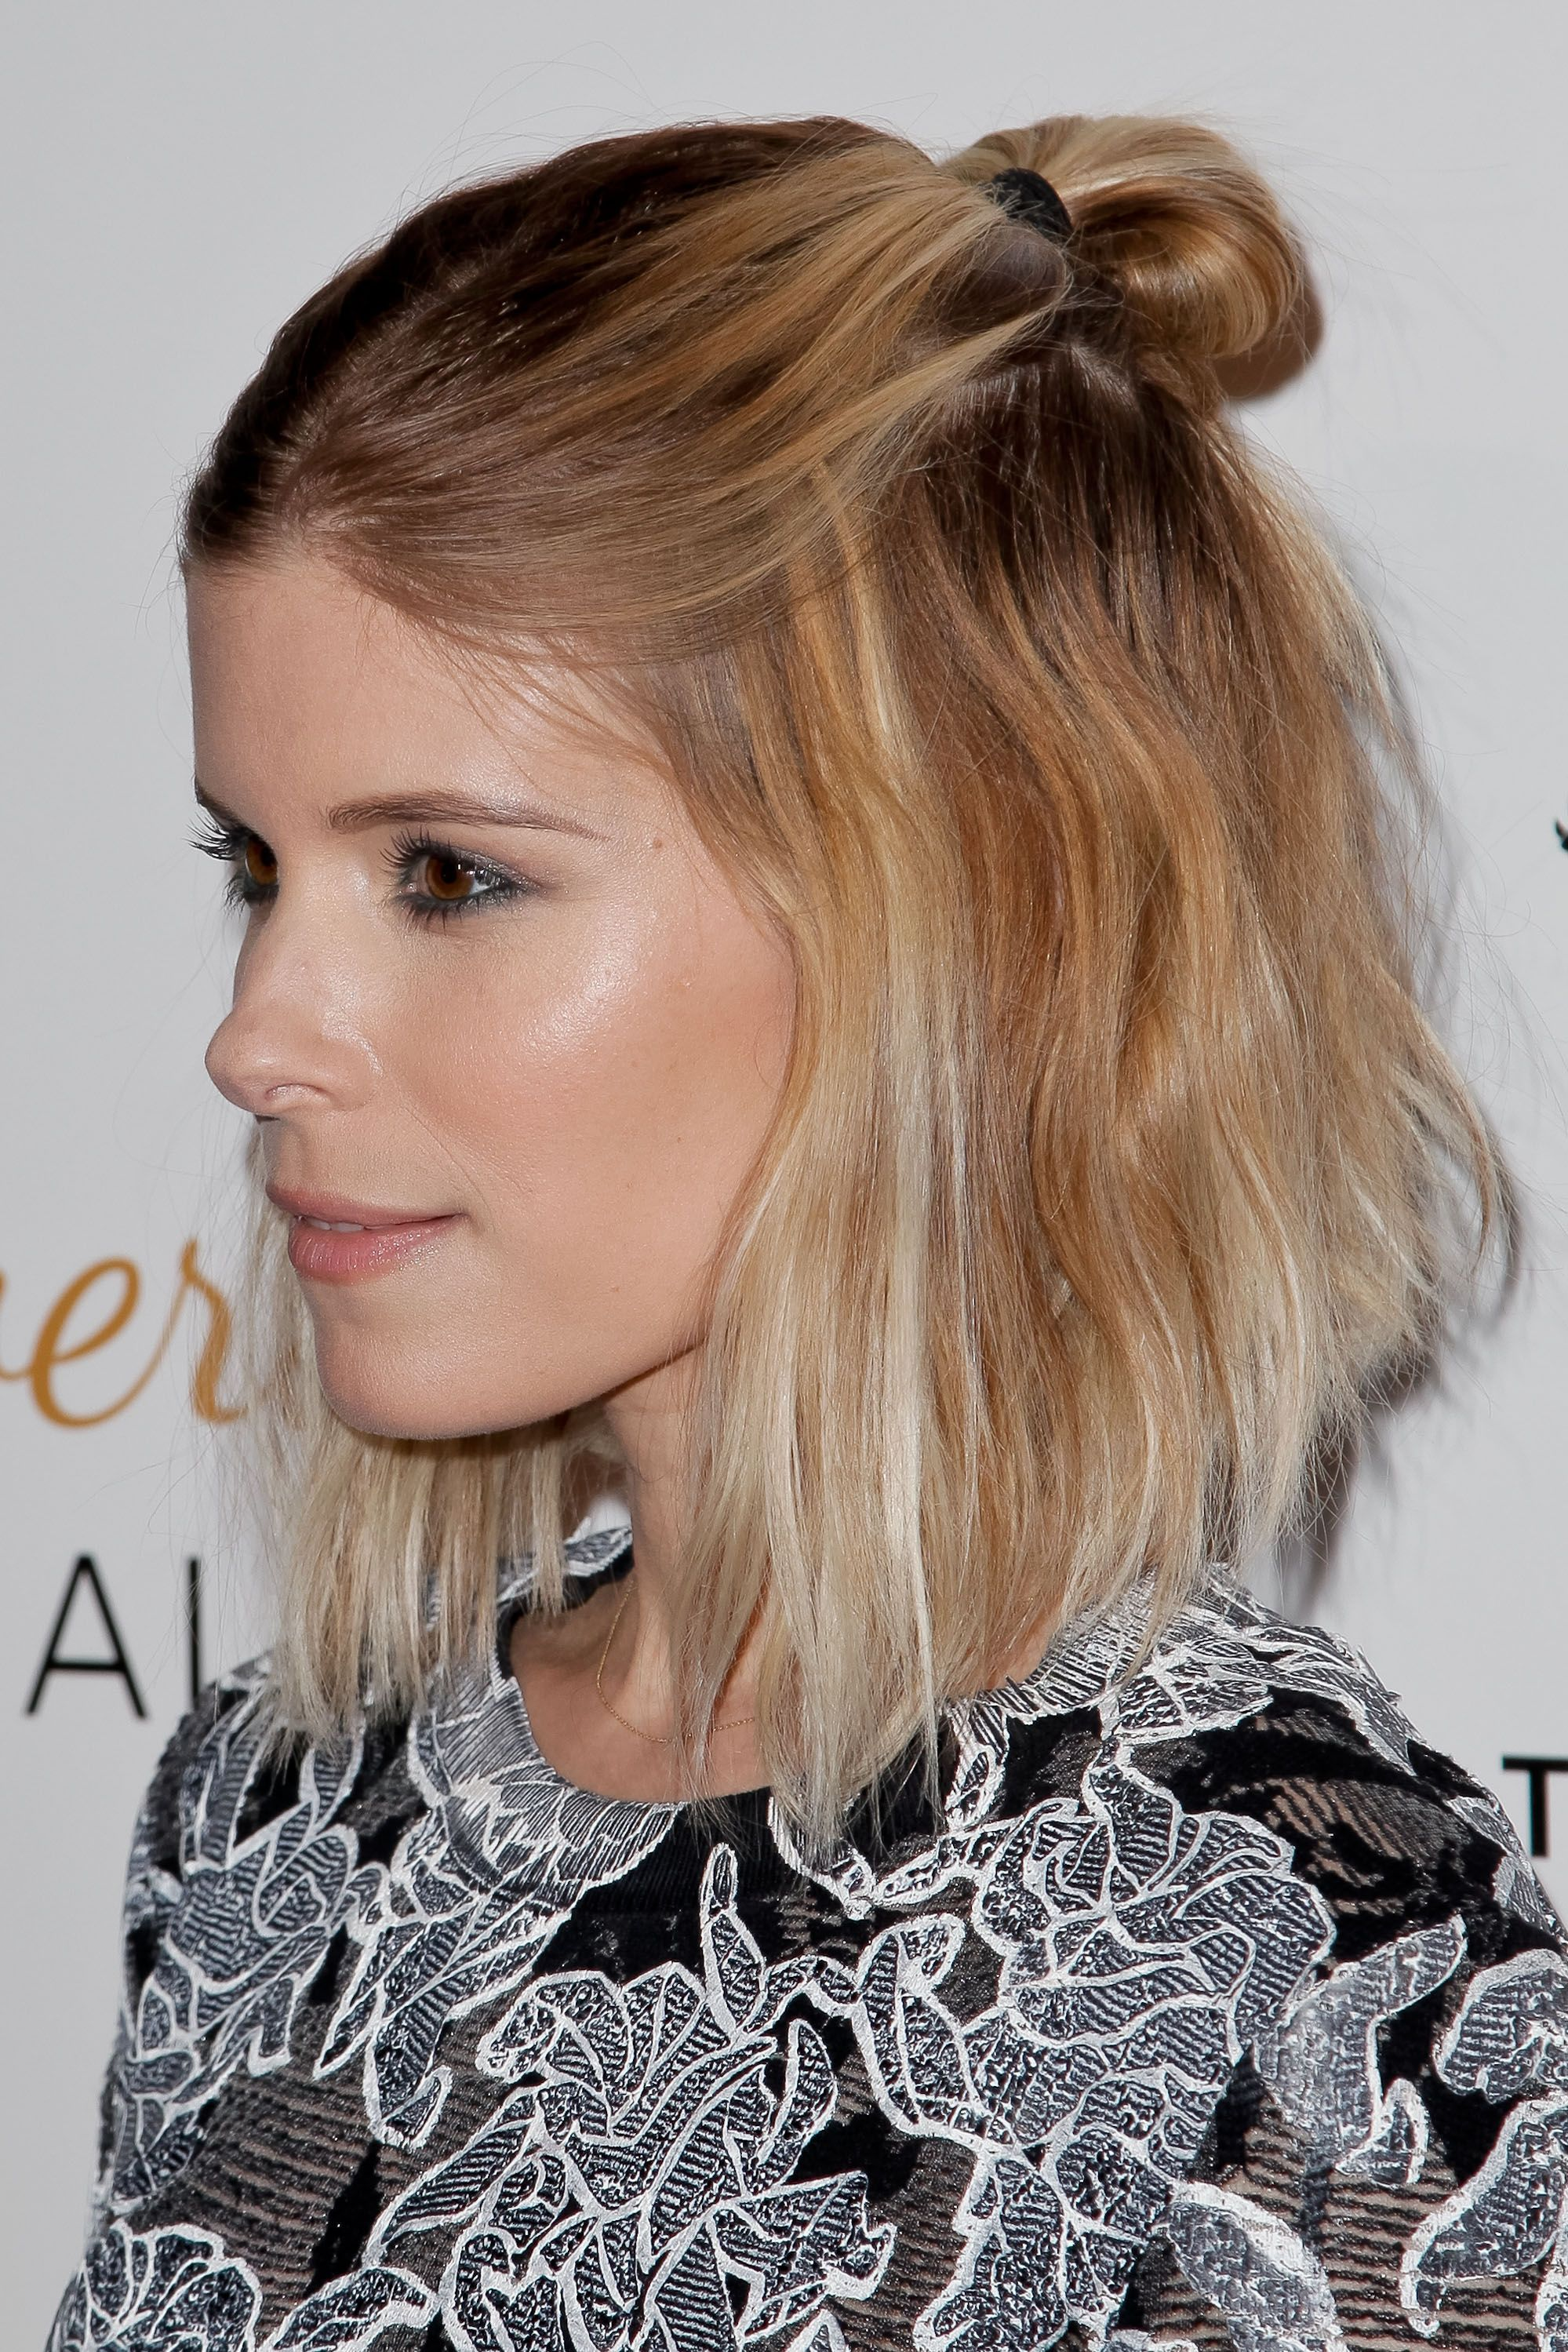 40 Best Hairstyles For Thin Hair Haircuts For Women With Fine Or Thinning Hair